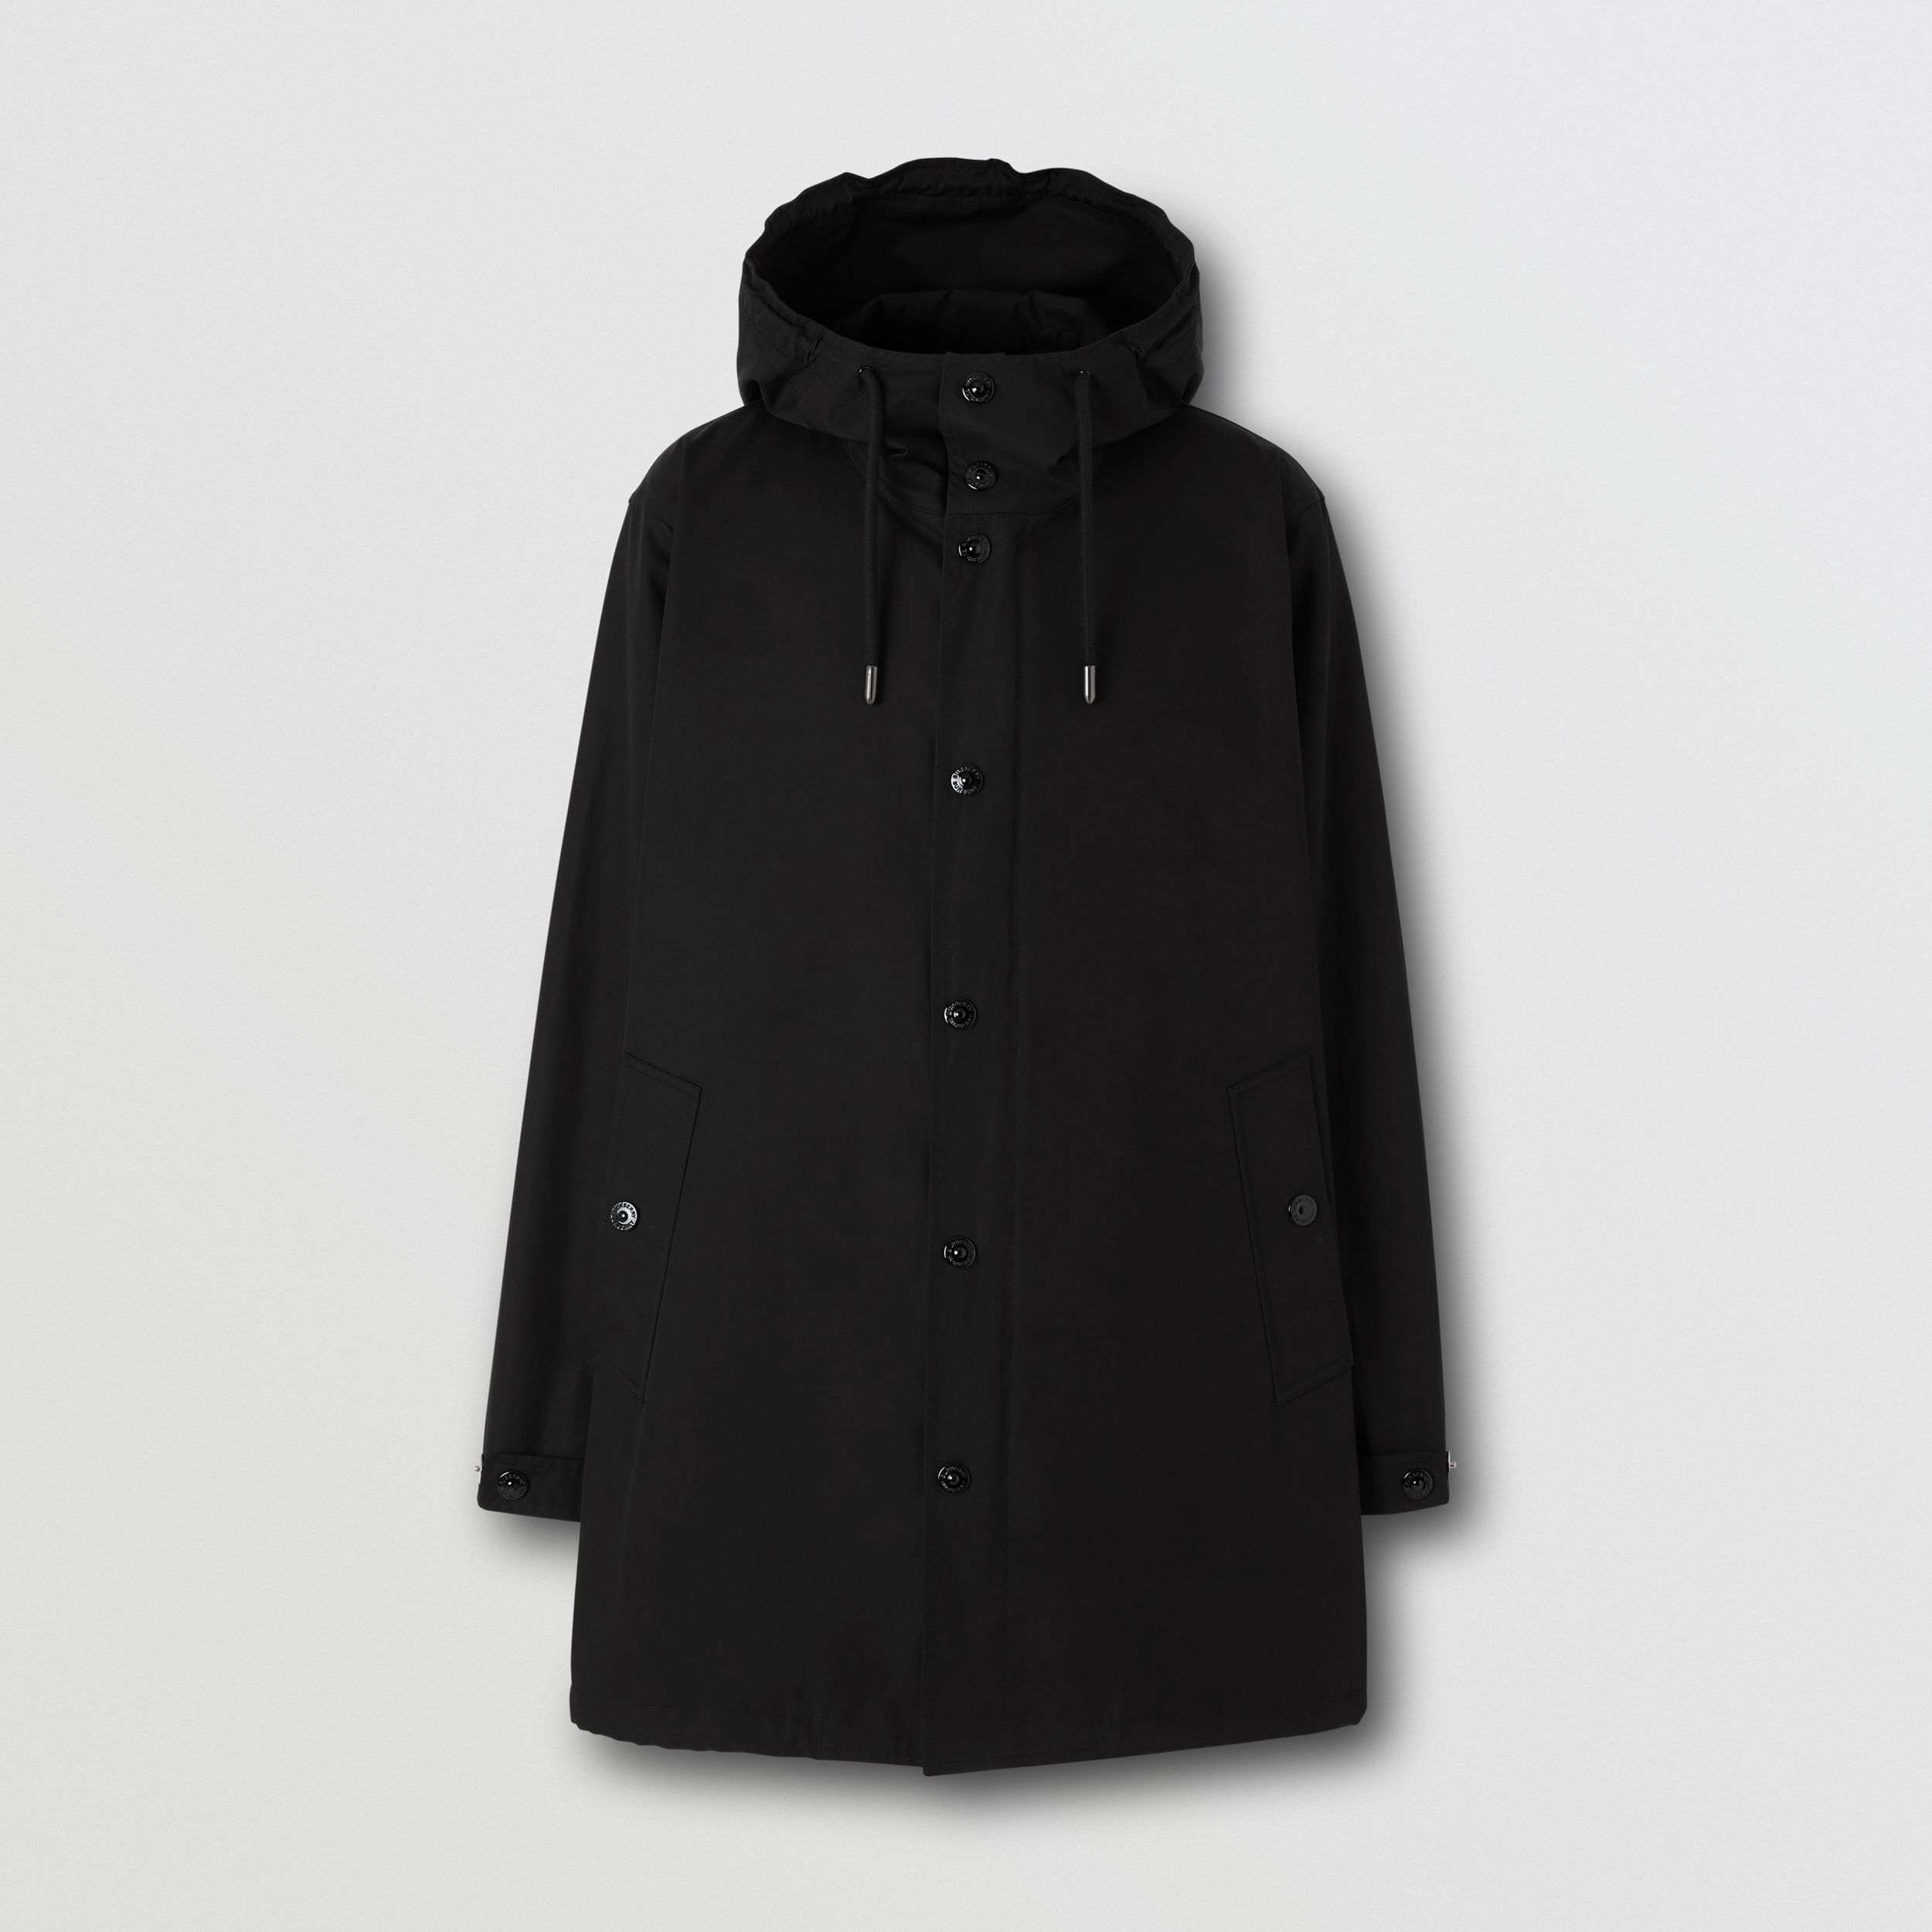 Logo Appliqué Cotton Hooded Coat in Black - Men | Burberry - 4